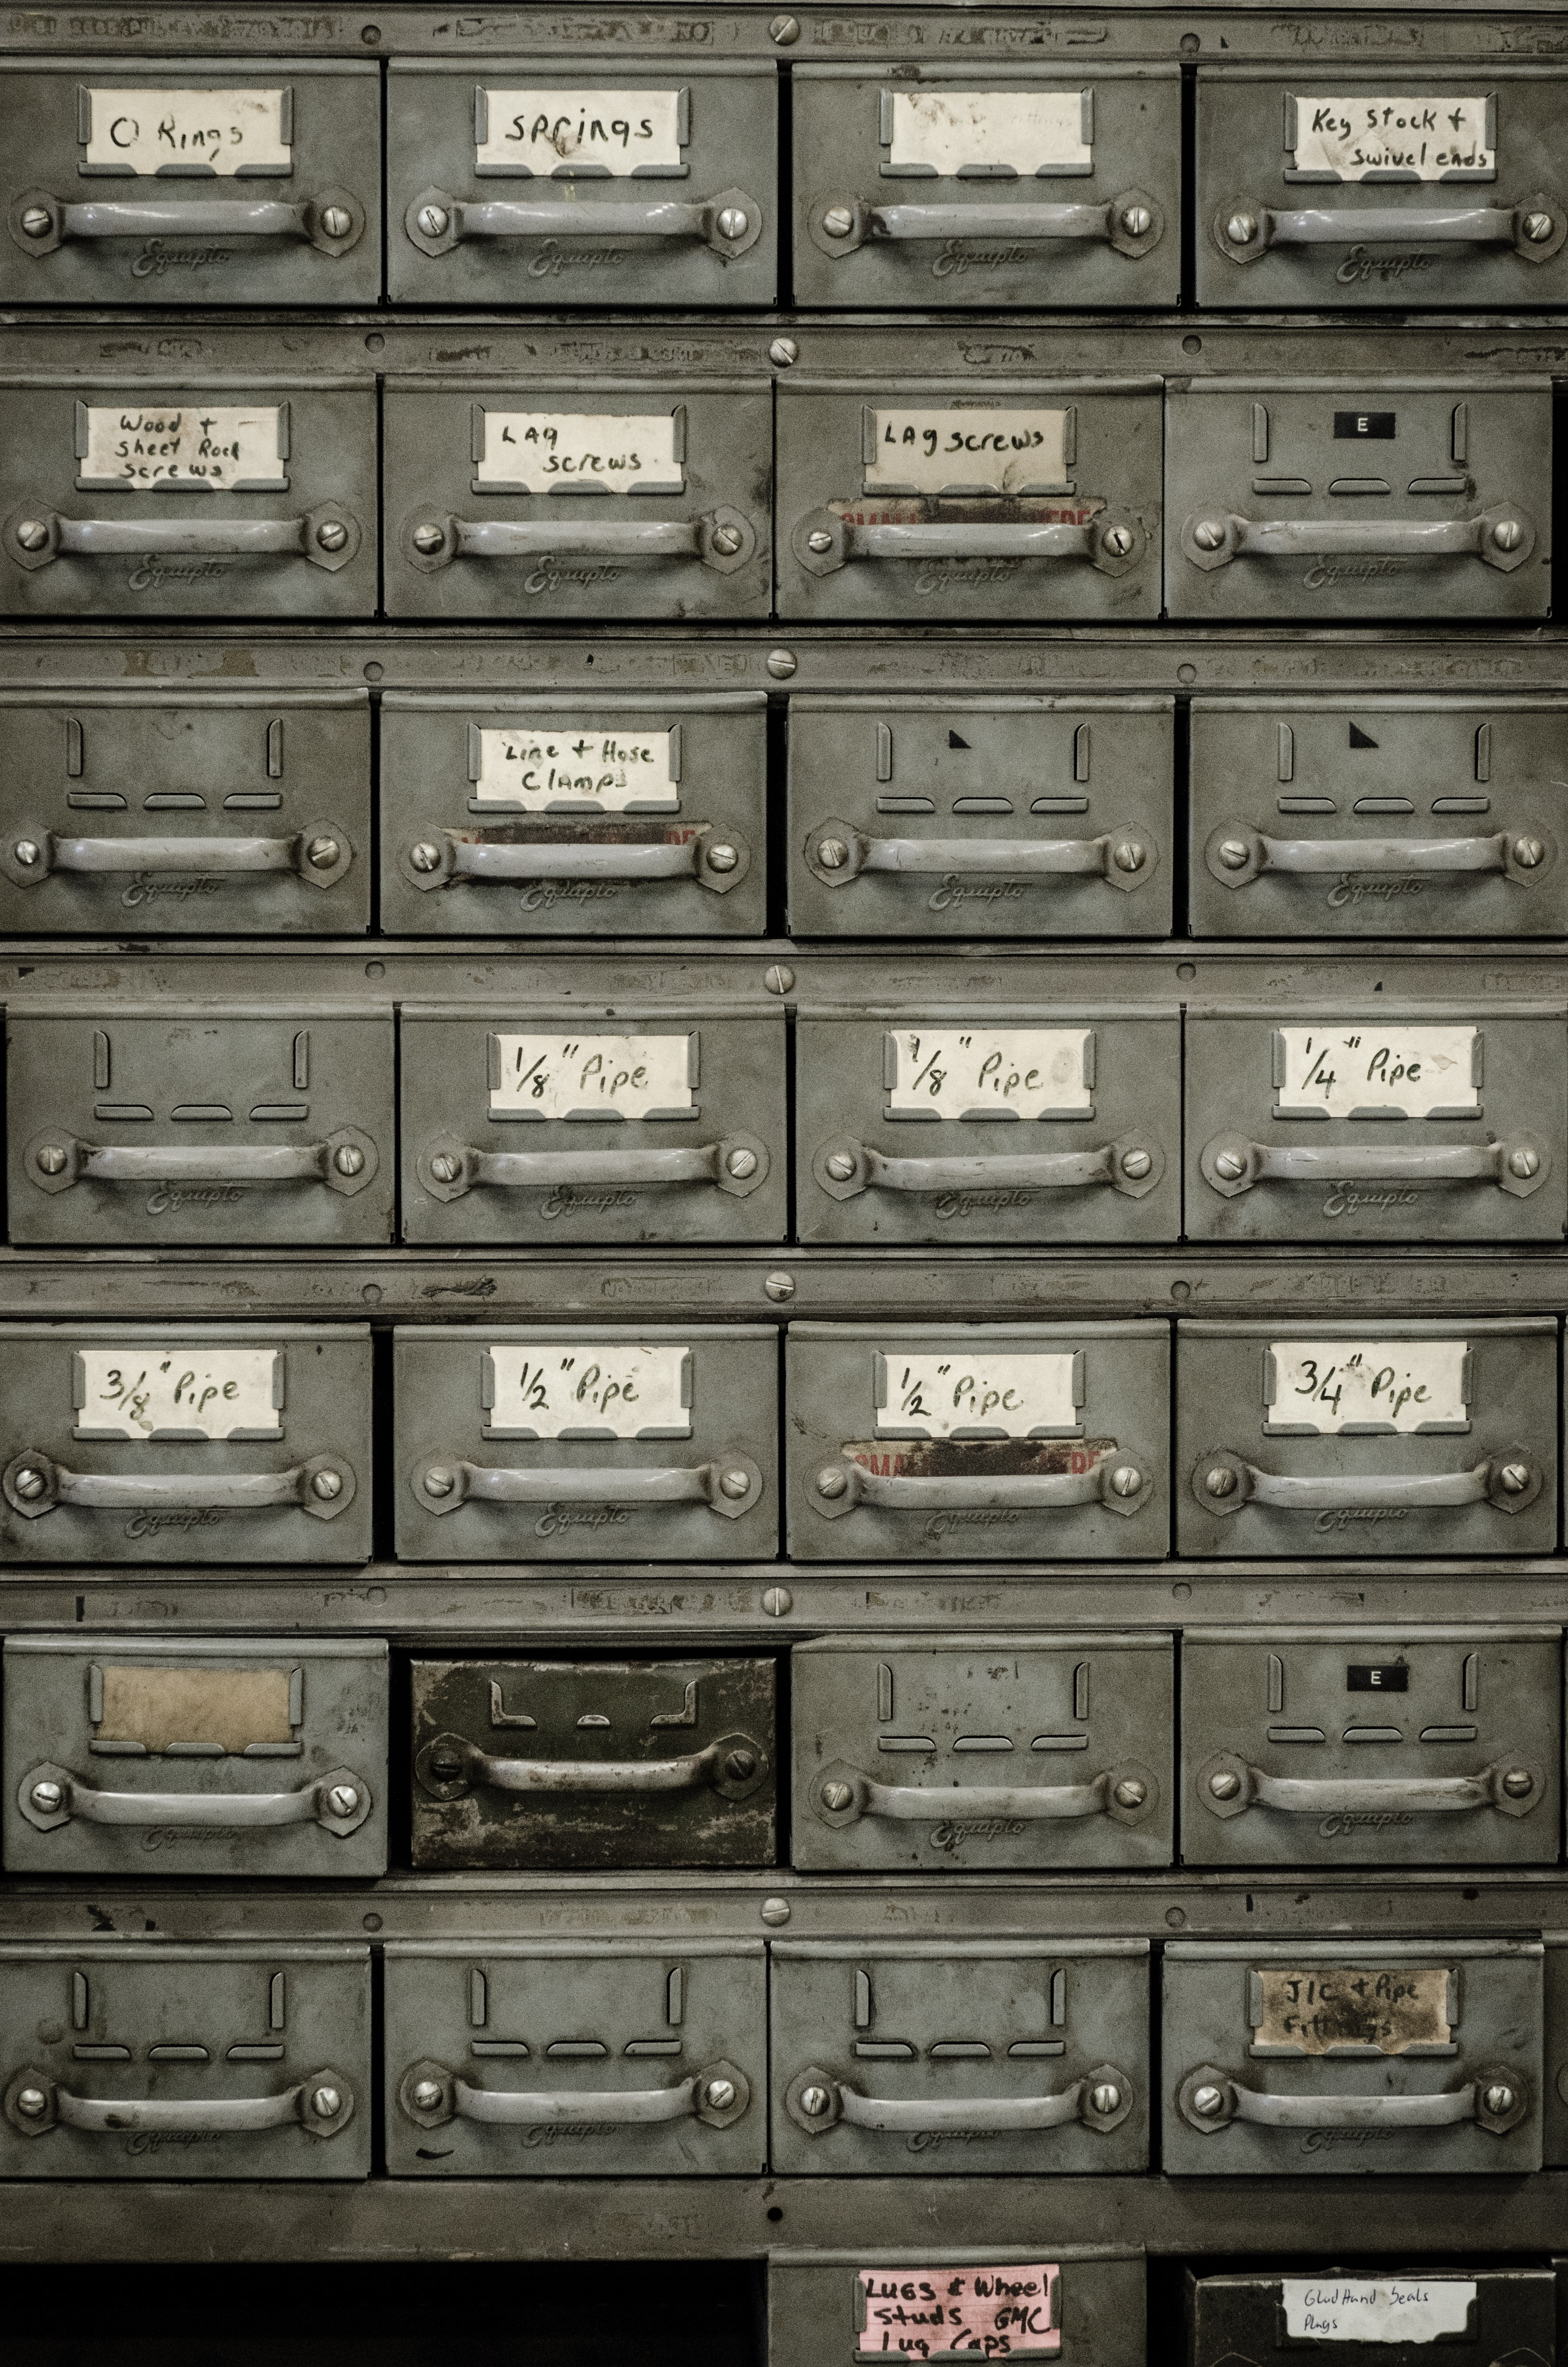 An old document cabinet with small drawers